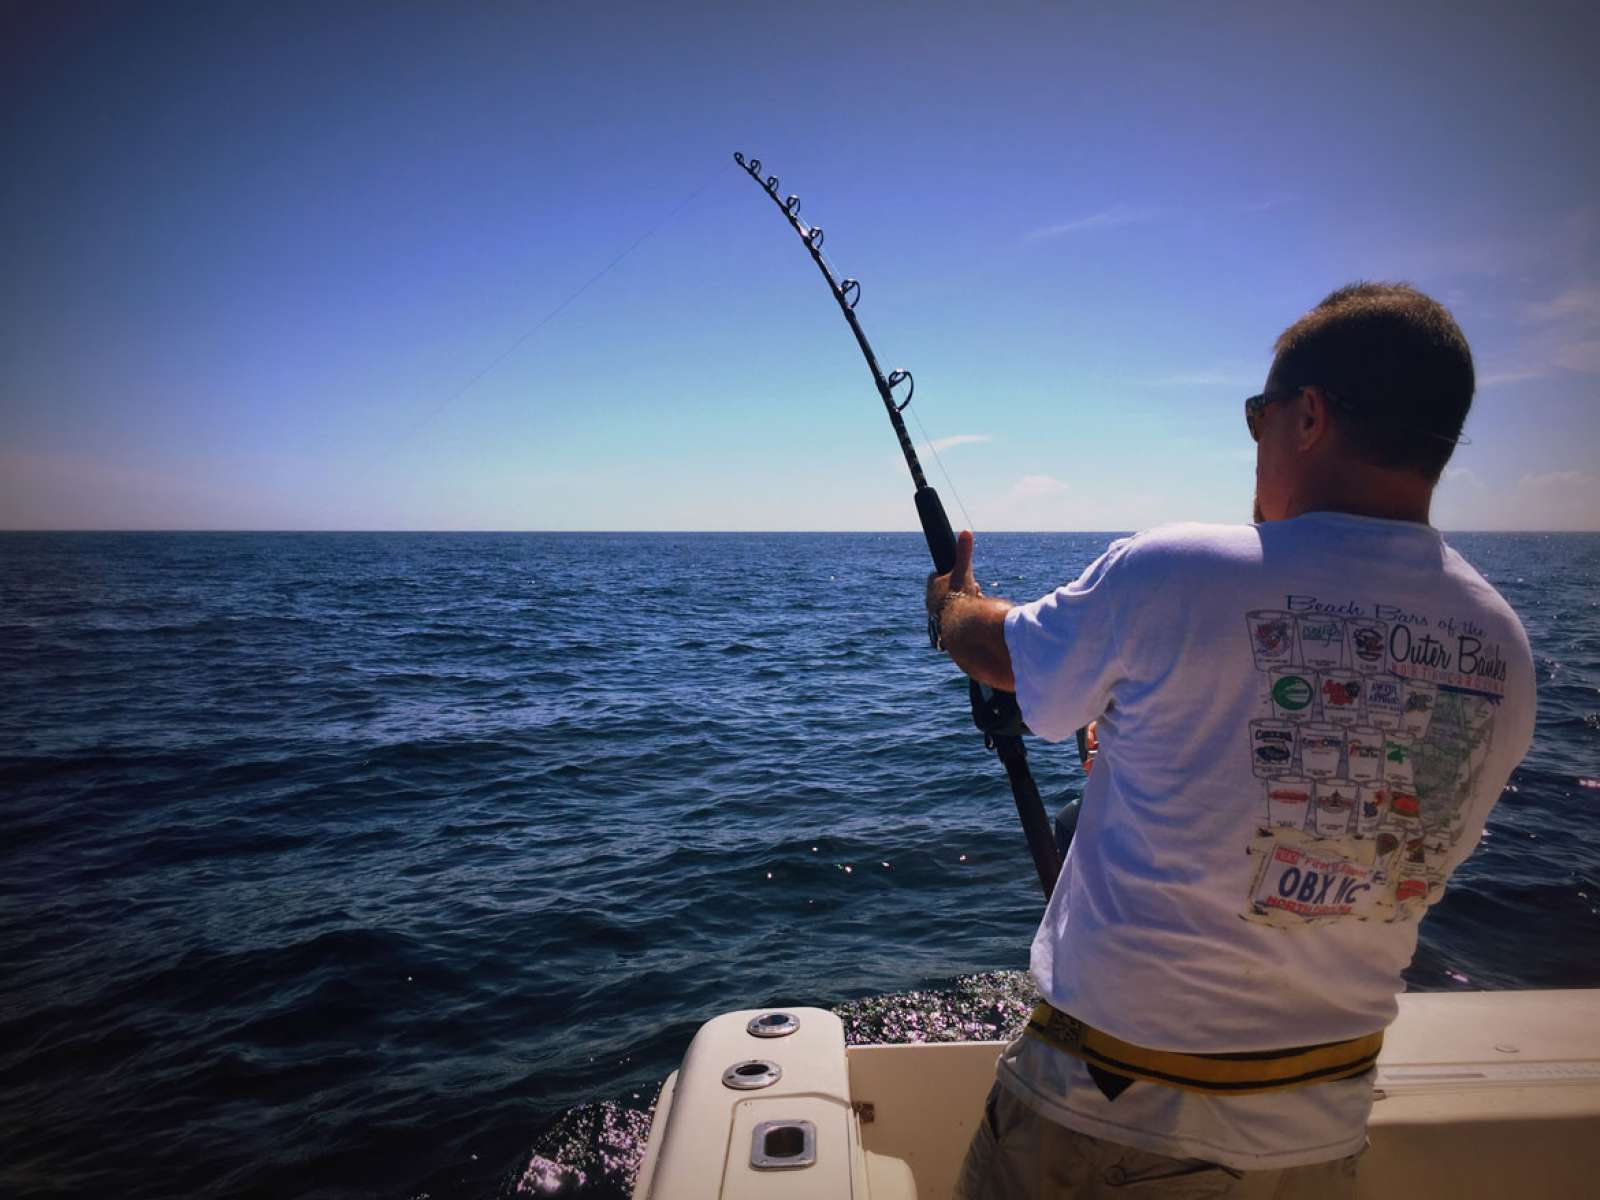 Dave Foster from Suffolk, Virginia fishing